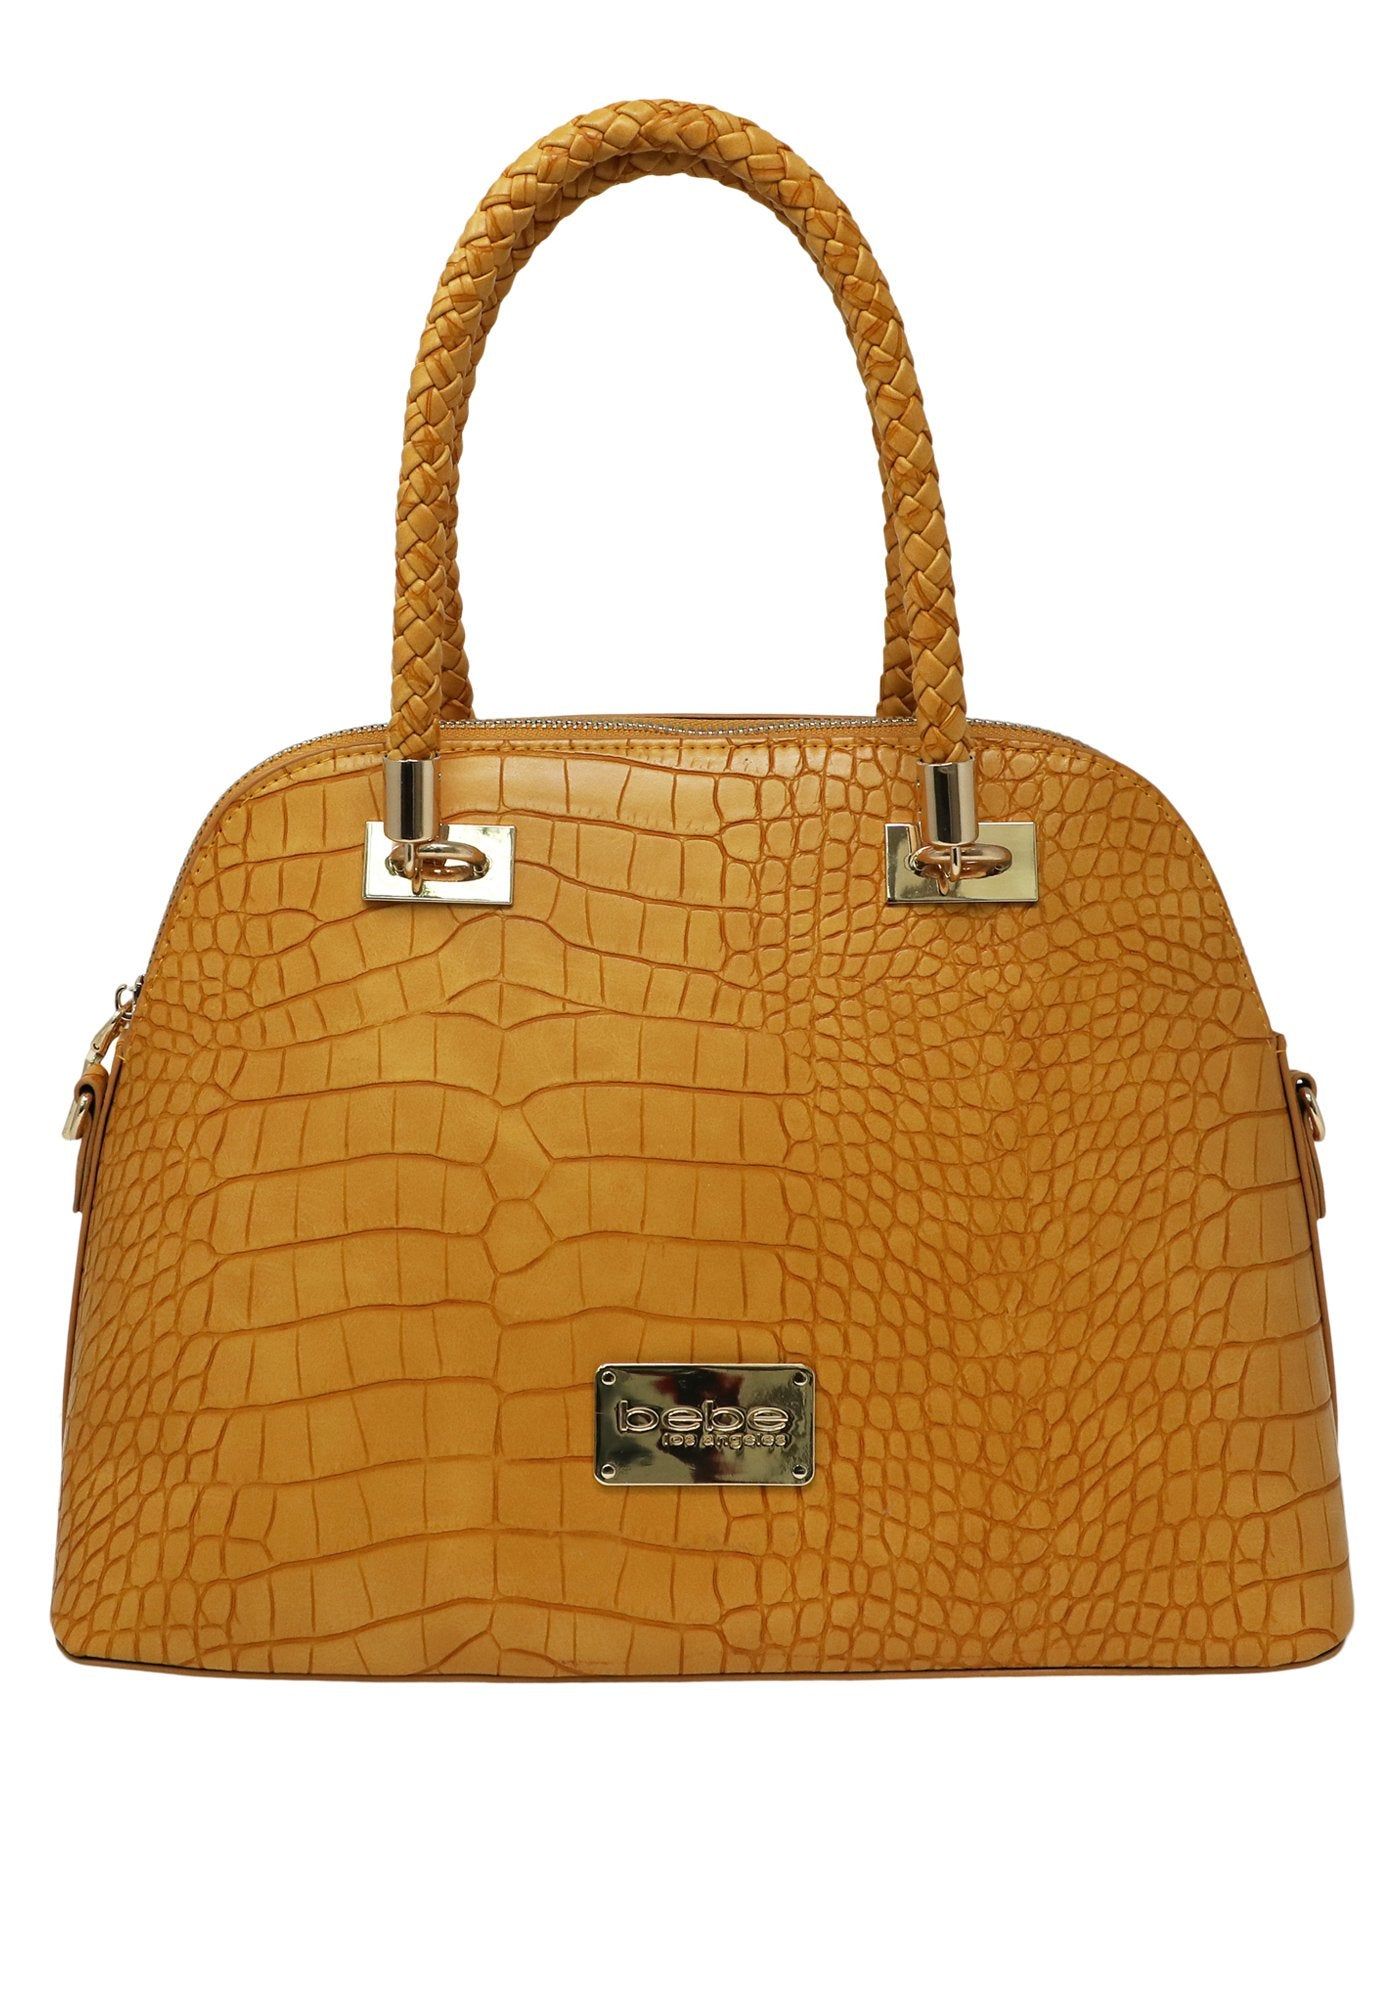 Bebe Women's Natalie Croc Dome Bag, Size OS in Mustard Polyurethane